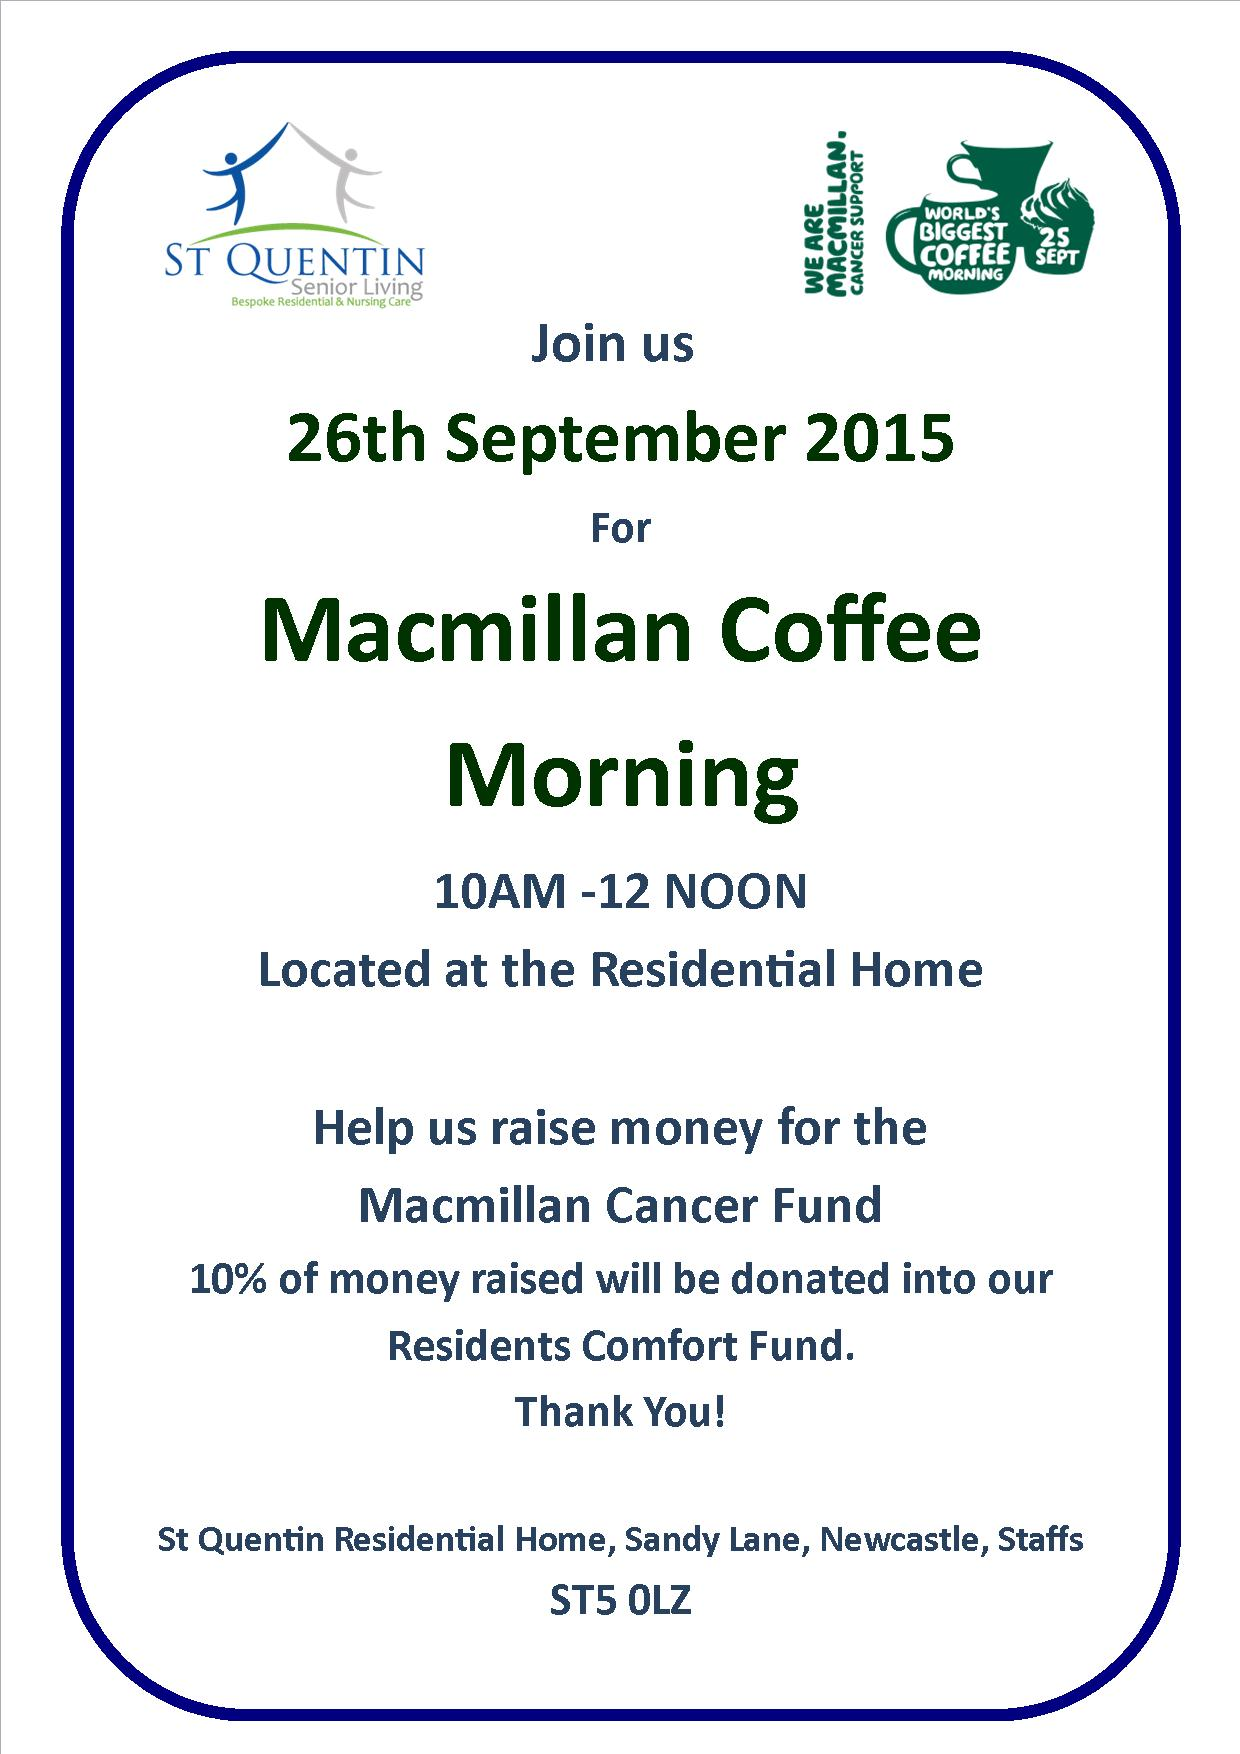 MACMILLAN COFFE MORNING SEPT 2015 3.pdf